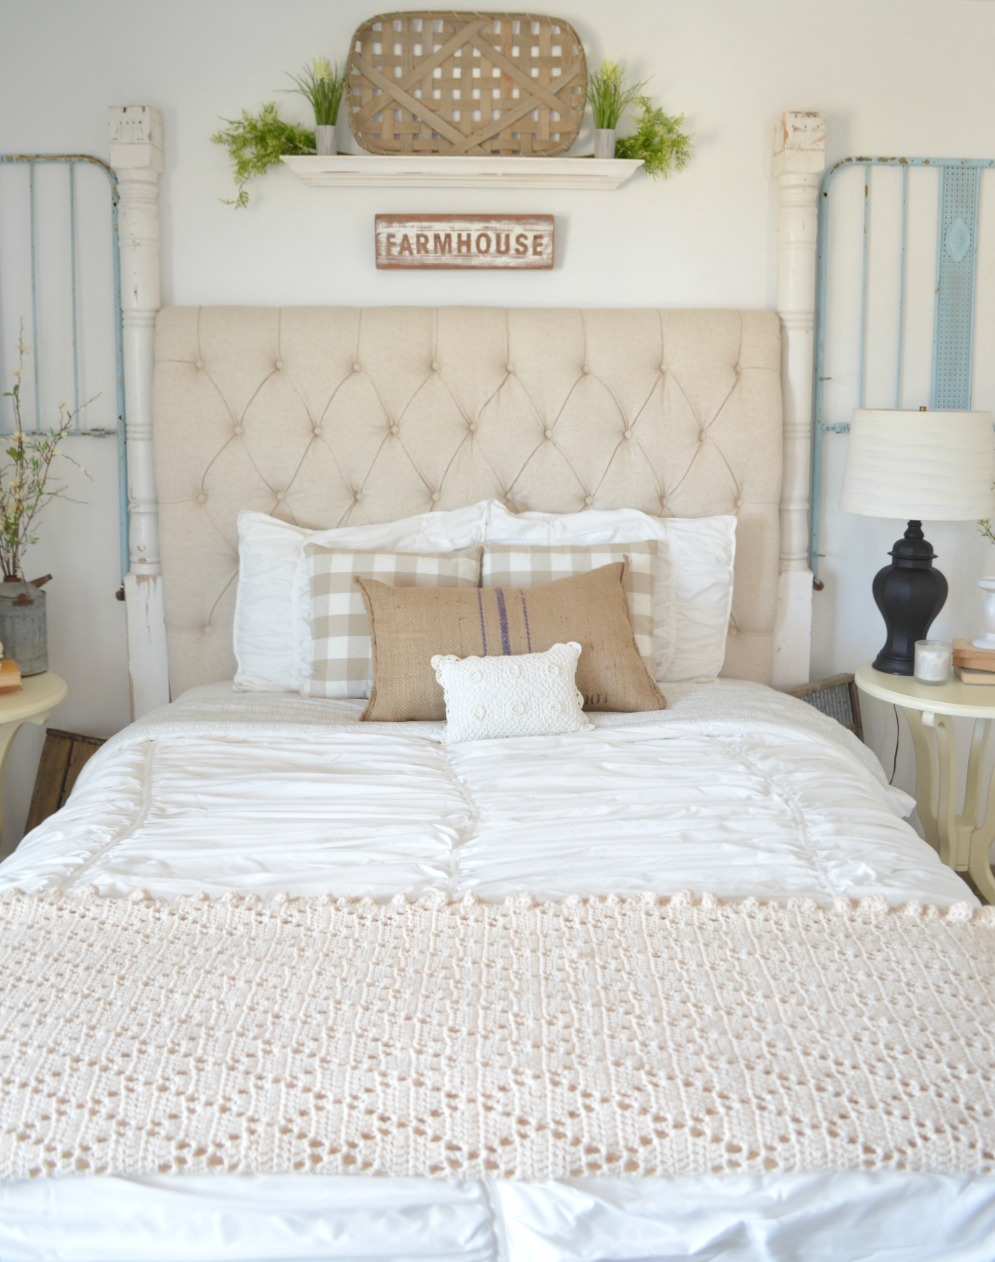 Vintage Crib Frame in Guest Bedroom. Vintage farmhouse bedroom decor ideas.